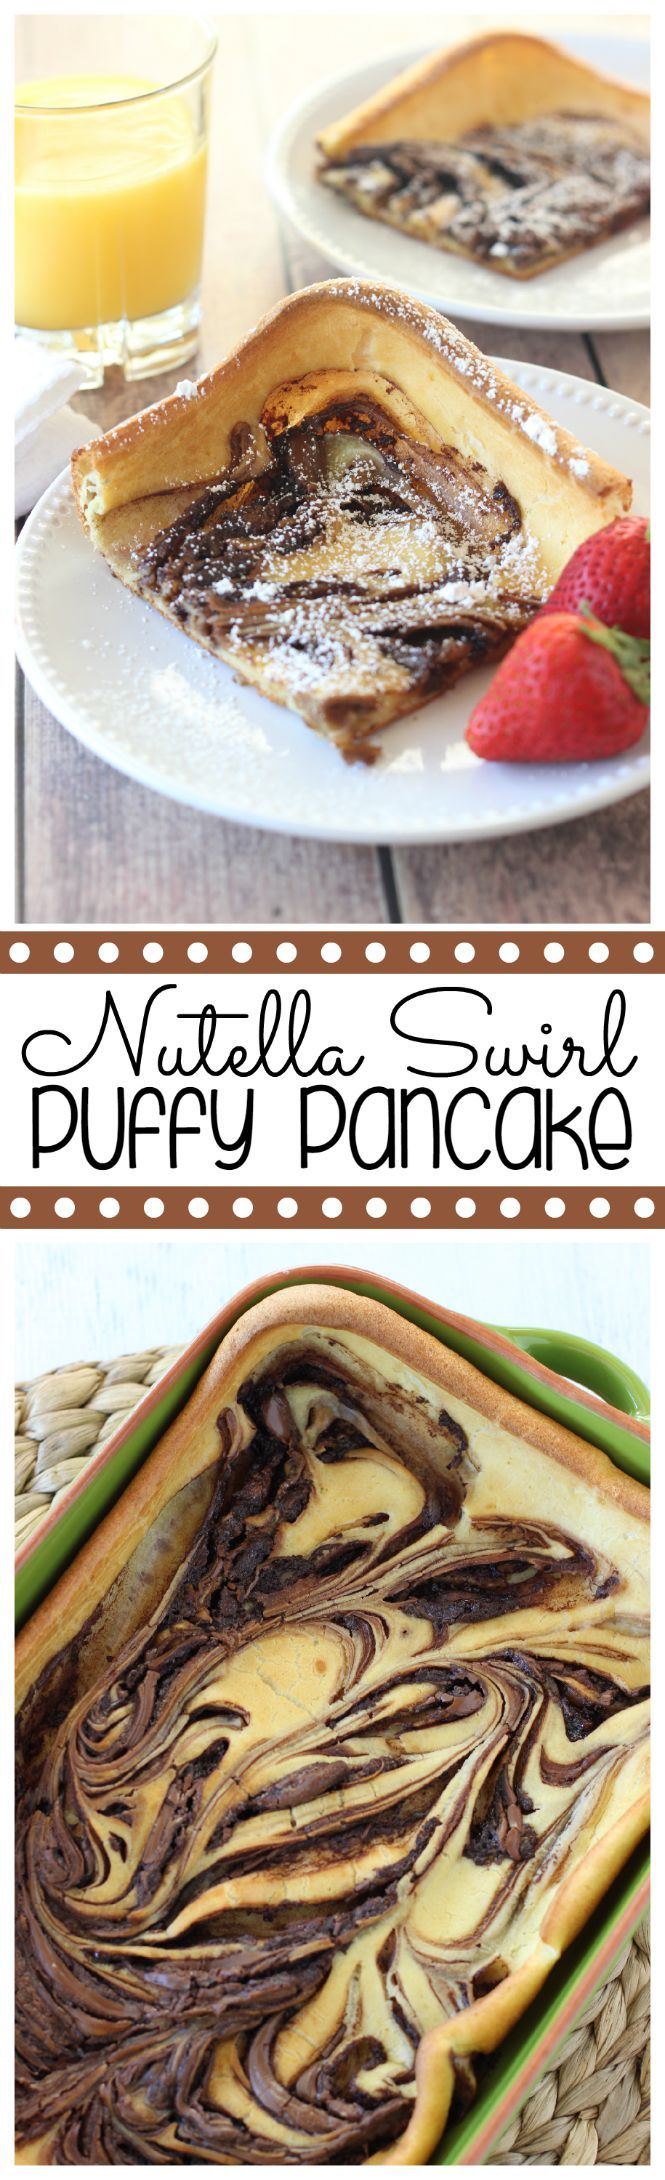 Nutella Swirl Puffy Pancake - Diary of a Recipe Collector